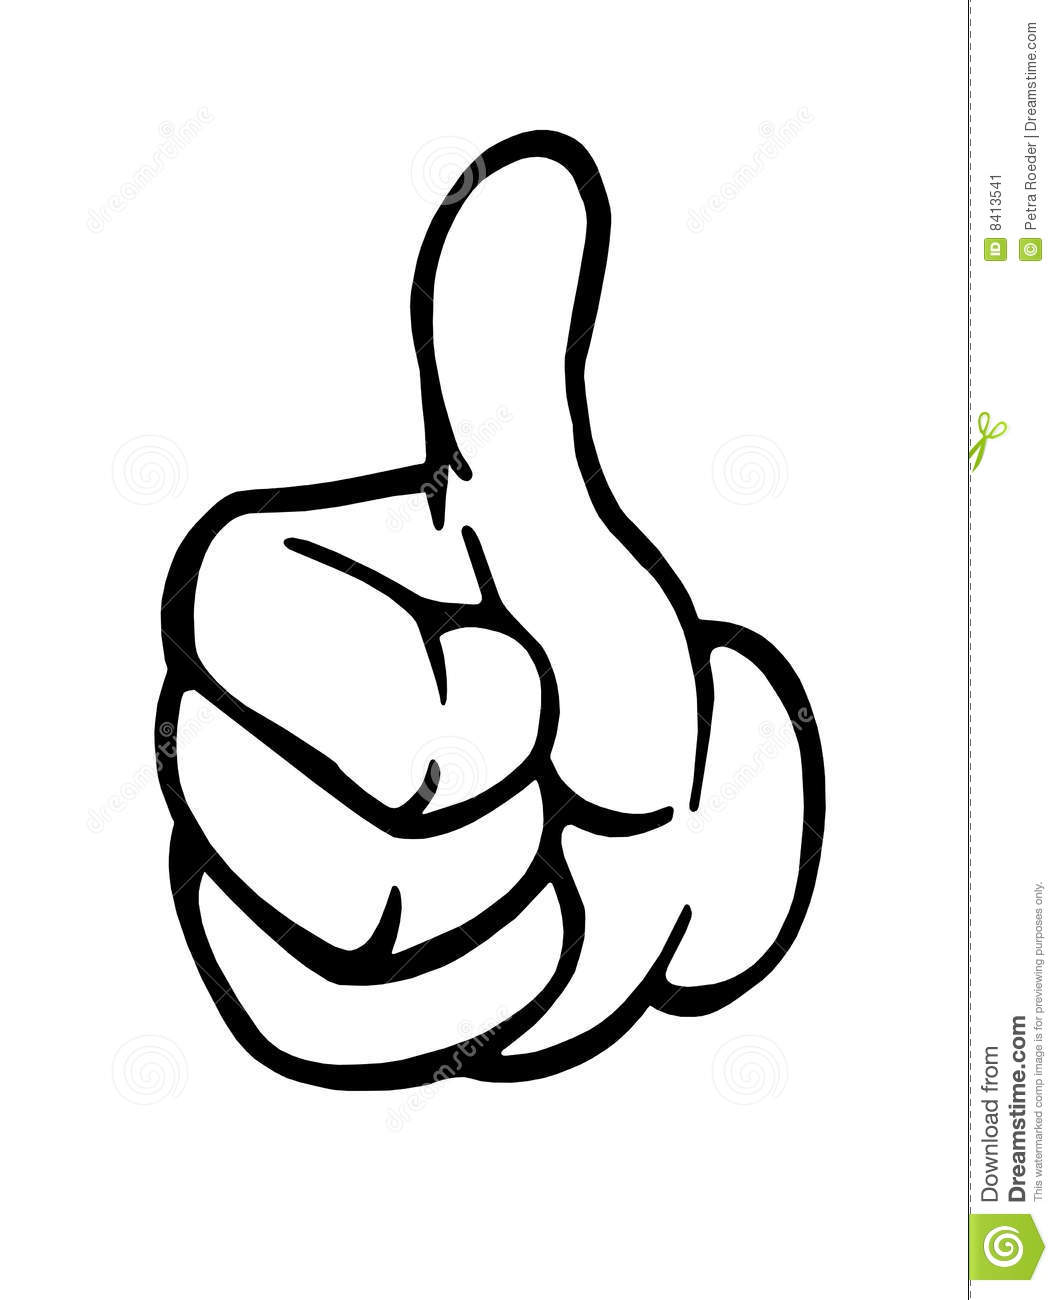 Thumbs Up Image Clipart